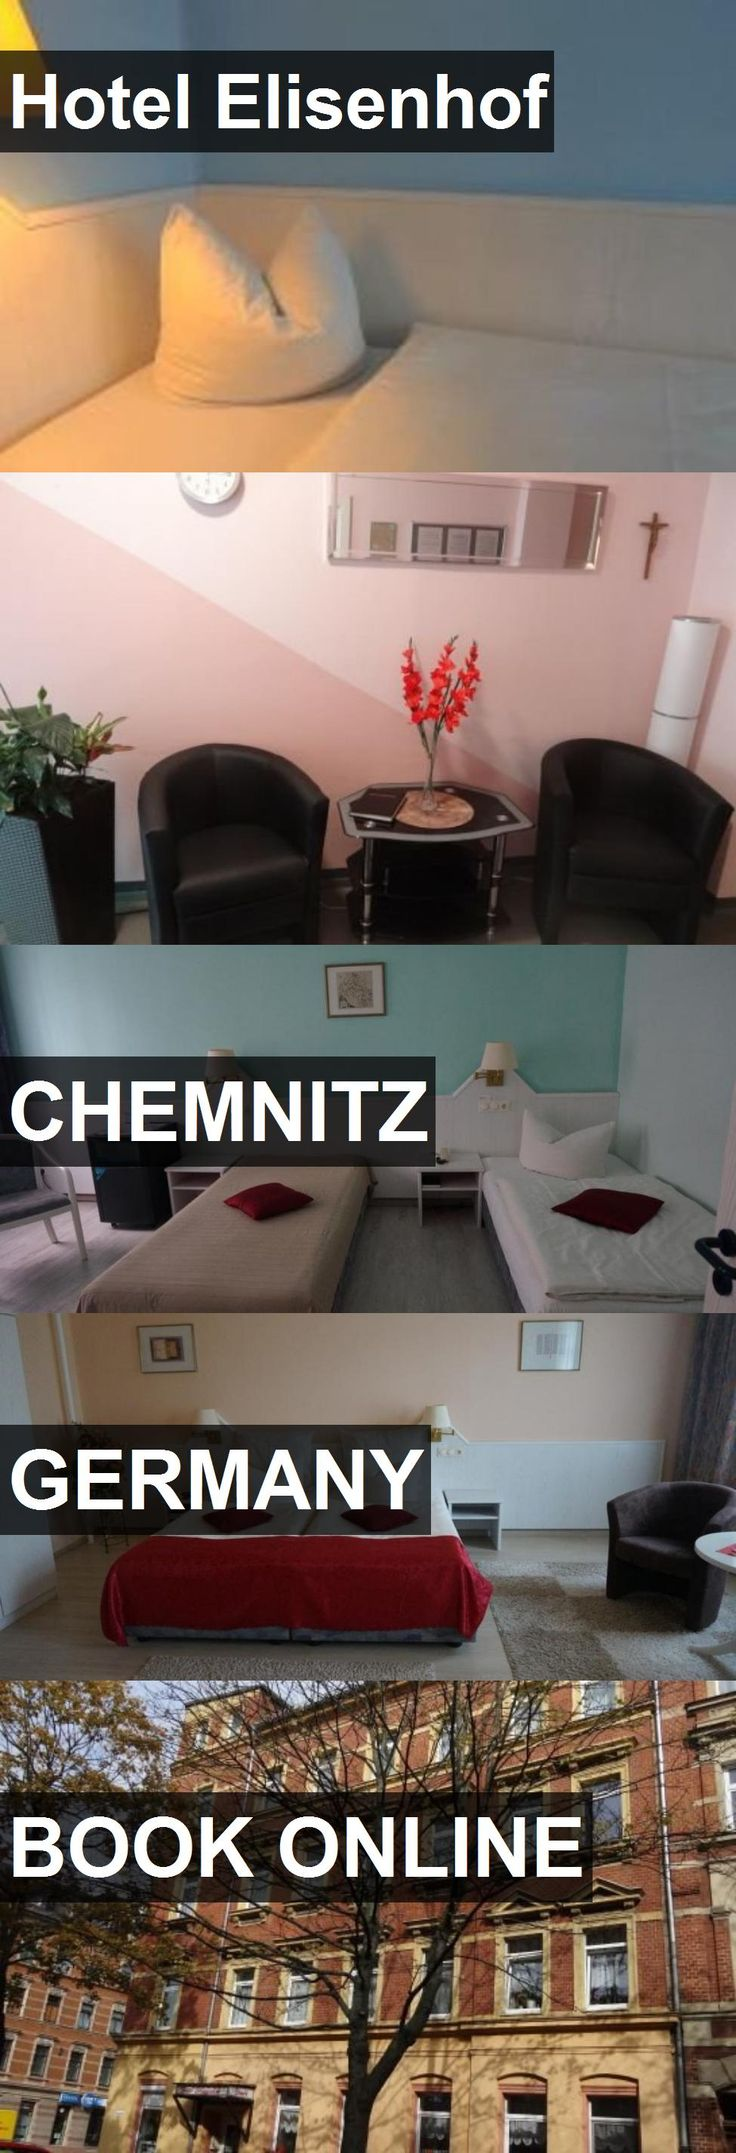 Hotel Elisenhof in Chemnitz, Germany. For more information, photos, reviews and best prices please follow the link. #Germany #Chemnitz #travel #vacation #hotel